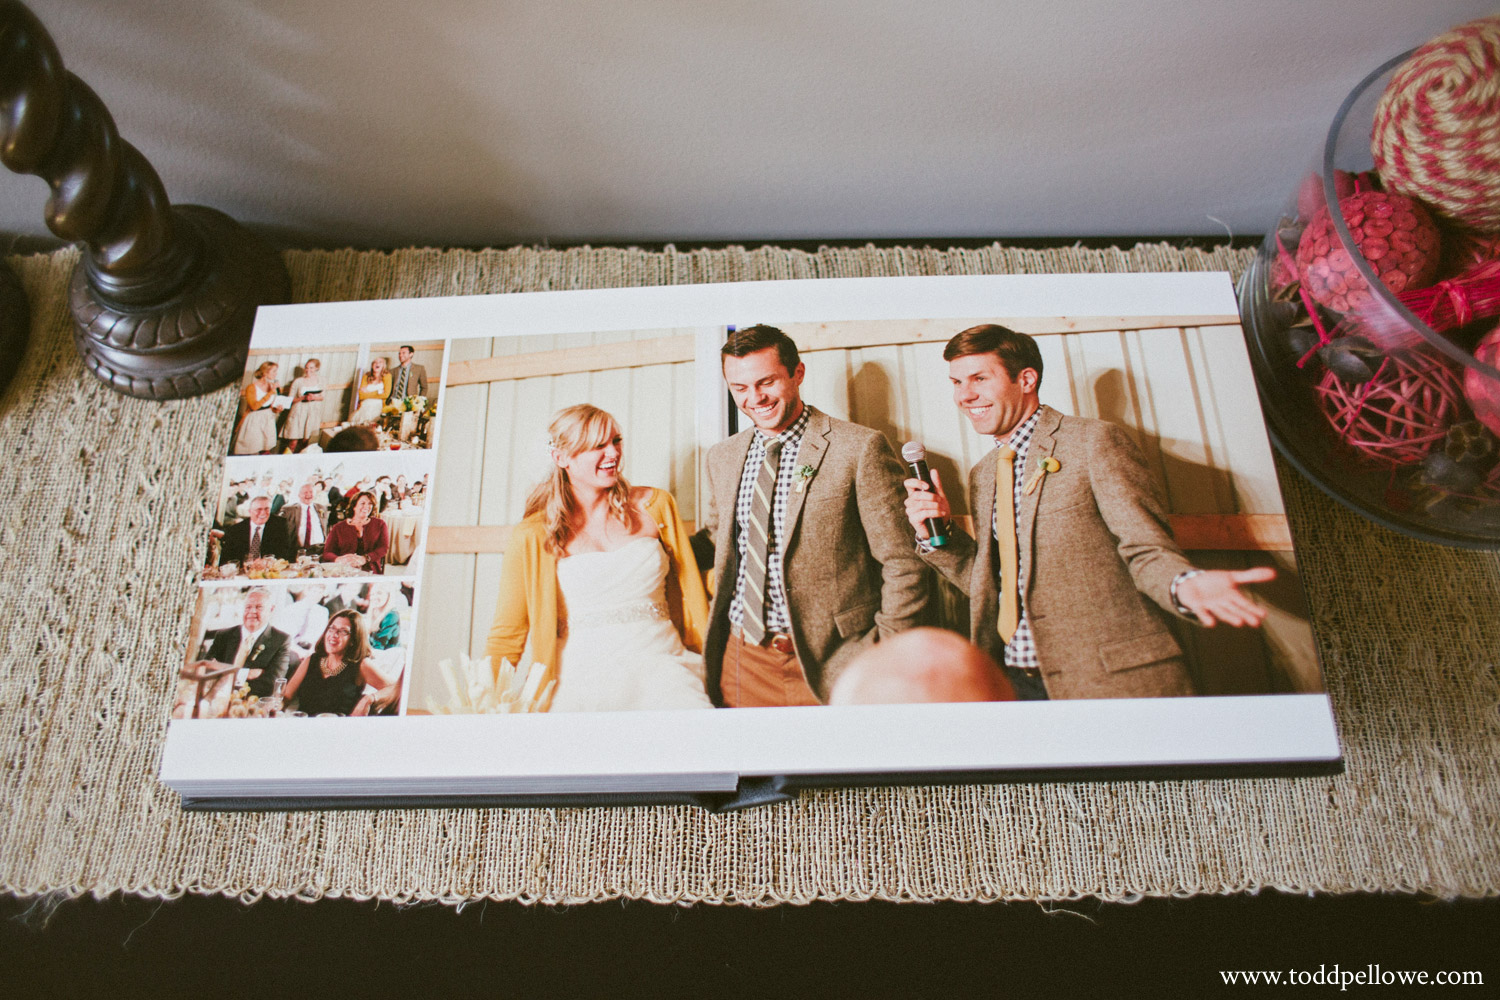 05-louisville-wedding-albums-038.jpg